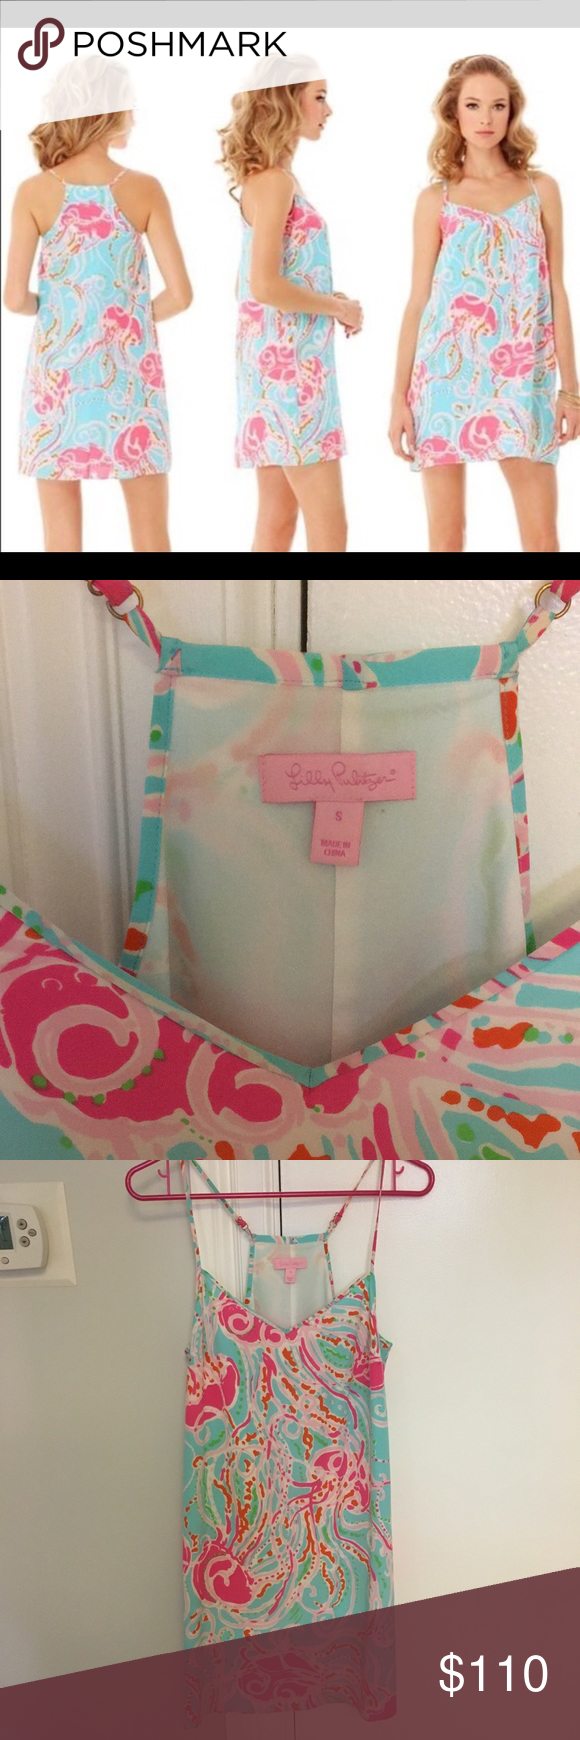 b61d170f29f7 Lilly Pulitzer Jellies Be Jammin Dusk Slip Dress Adorable Lilly Pulitzer  strappy, silk dress in Jellies Be Jammin print. Excellent condition with no  stains ...